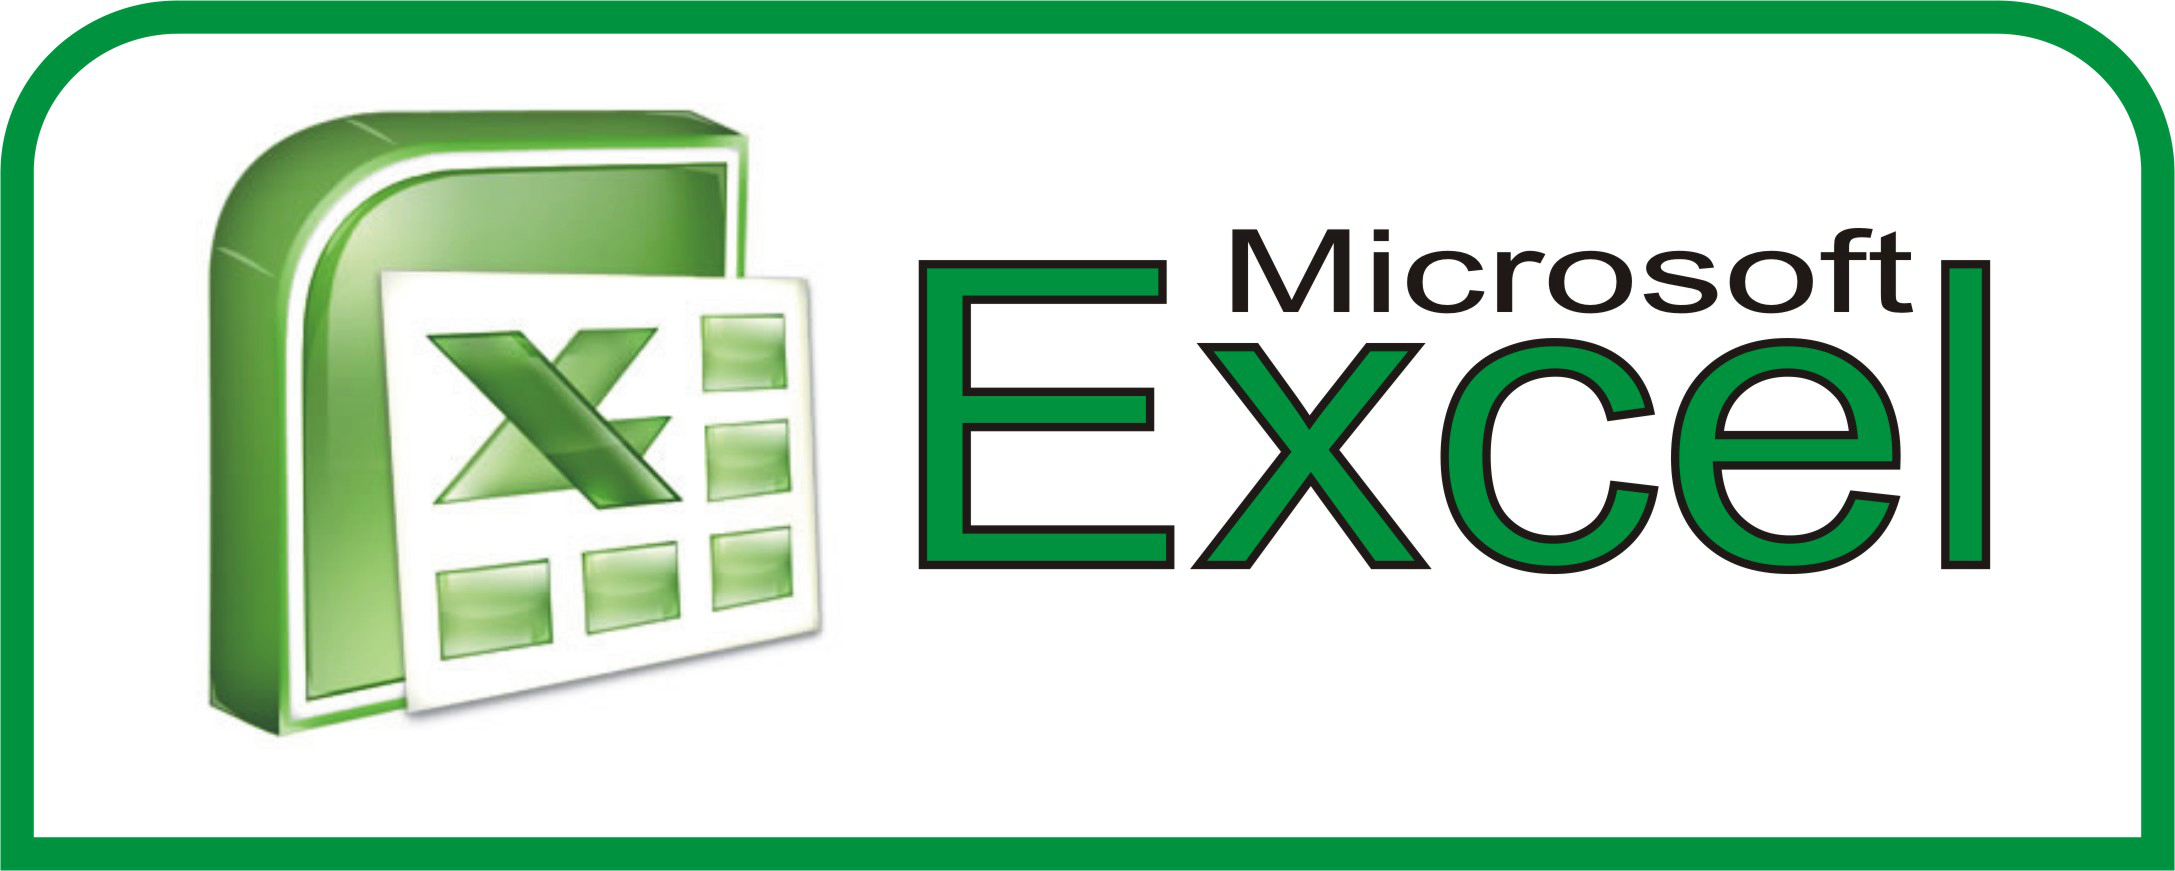 Ediblewildsus  Unique  Excel Shortcuts You Probably Didnt Know About  Techdissected With Likable Prove It Excel  Test Answers Besides How Do You Lock A Formula In Excel Furthermore Excel  Budget Template With Astounding Excel Macro Enabled Template Also What Is Excel  In Addition Excel Windows Side By Side And Excel Month Year Formula As Well As Visual Basic Excel Functions Additionally Excel Count Occurances From Techdissectedcom With Ediblewildsus  Likable  Excel Shortcuts You Probably Didnt Know About  Techdissected With Astounding Prove It Excel  Test Answers Besides How Do You Lock A Formula In Excel Furthermore Excel  Budget Template And Unique Excel Macro Enabled Template Also What Is Excel  In Addition Excel Windows Side By Side From Techdissectedcom